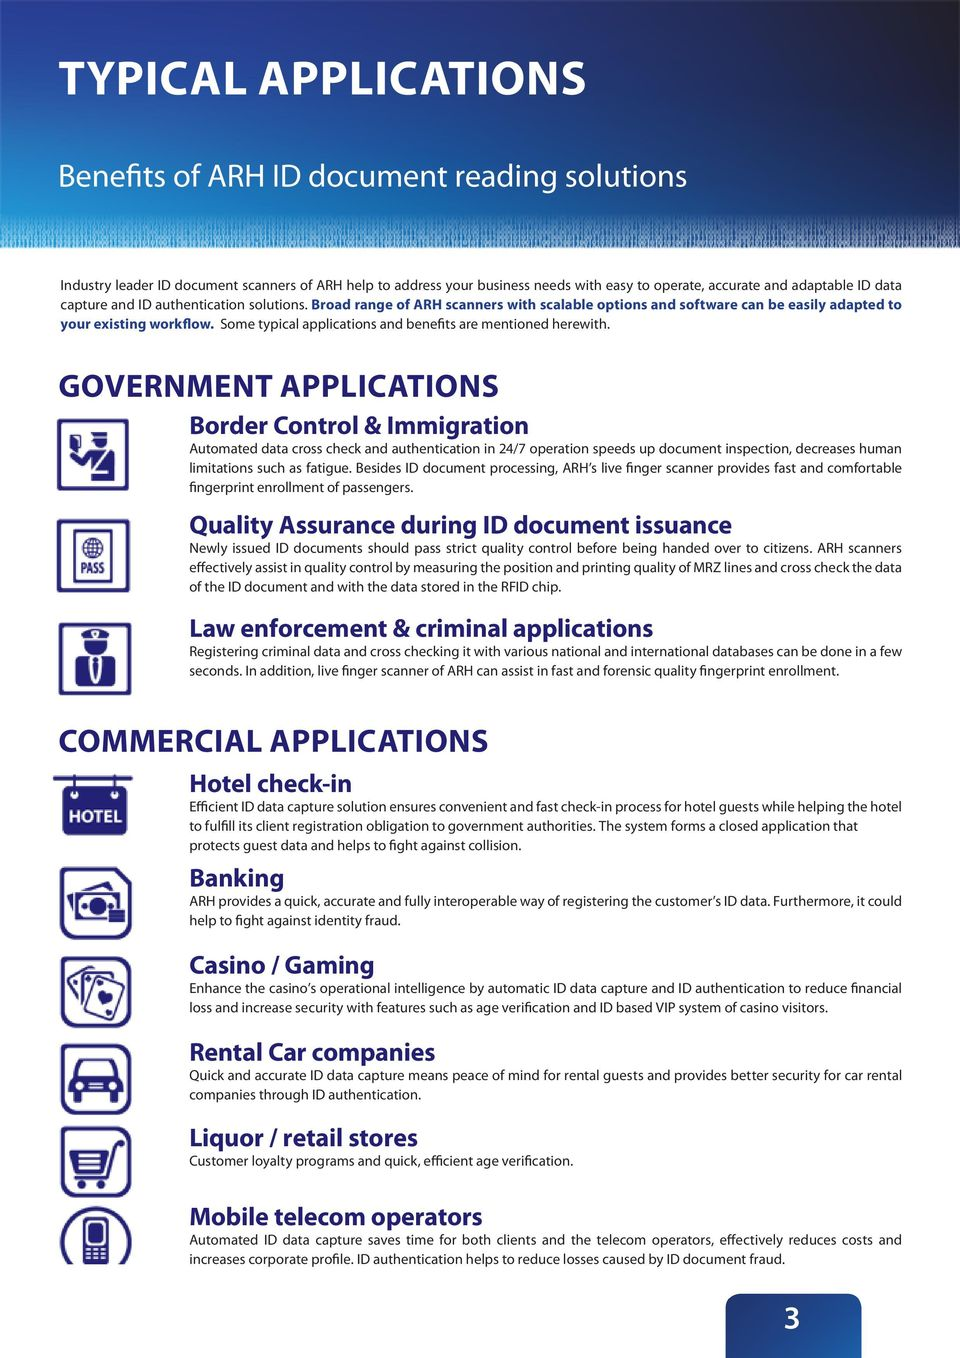 Some typical applications and benefits are mentioned herewith.